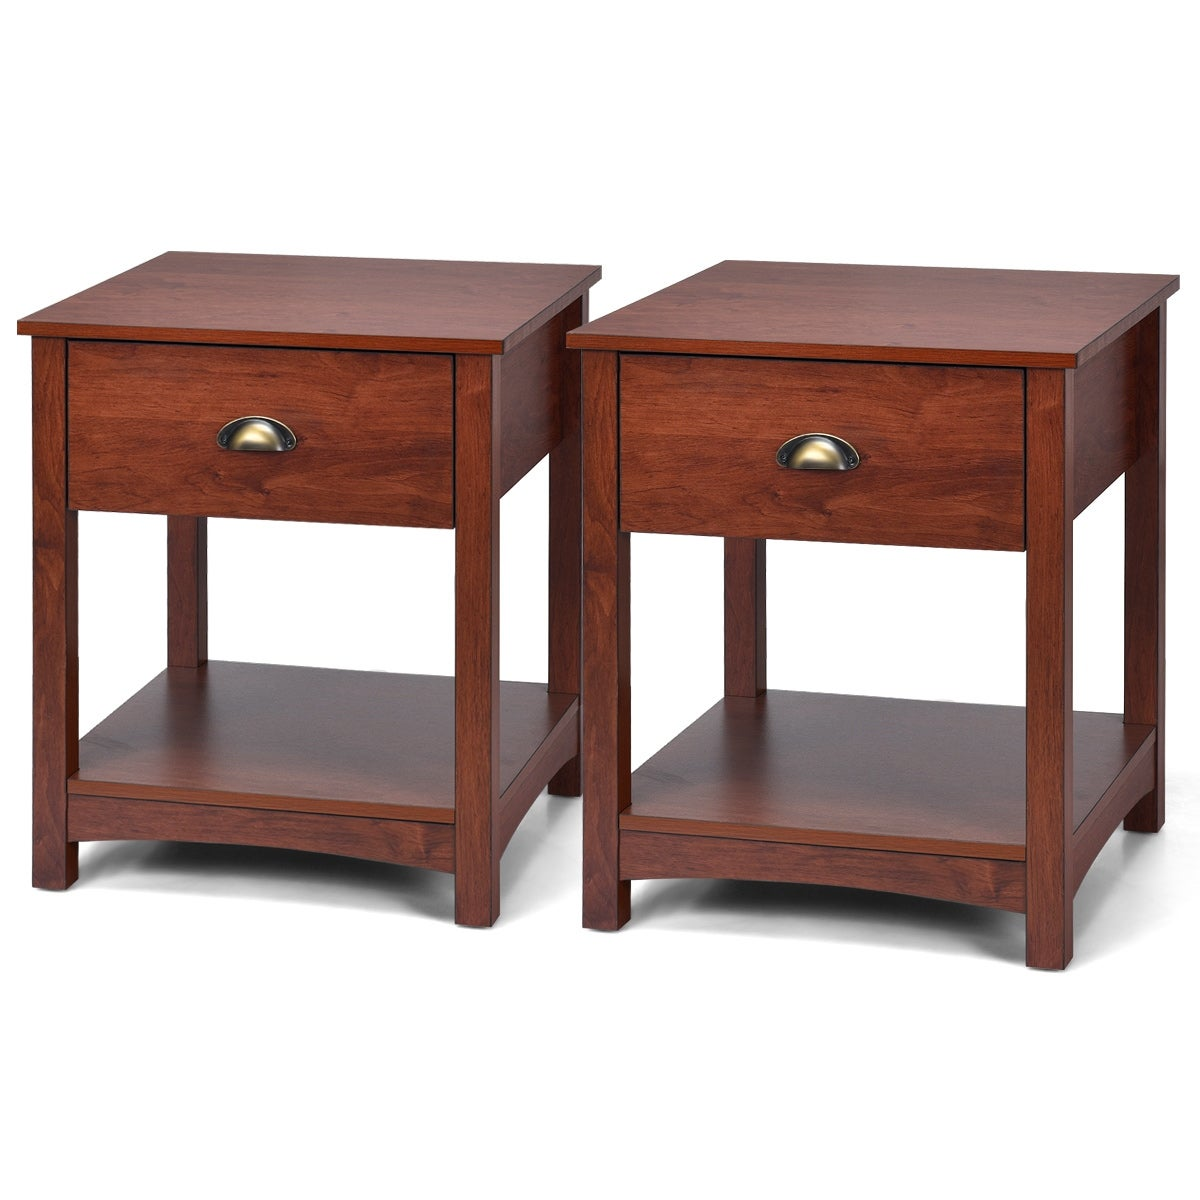 Night Stand Bedside Table Sofa Chair Side End Tables Bedroom Nightstand Set Of 2 Nightstands Home Garden Worldenergy Ae